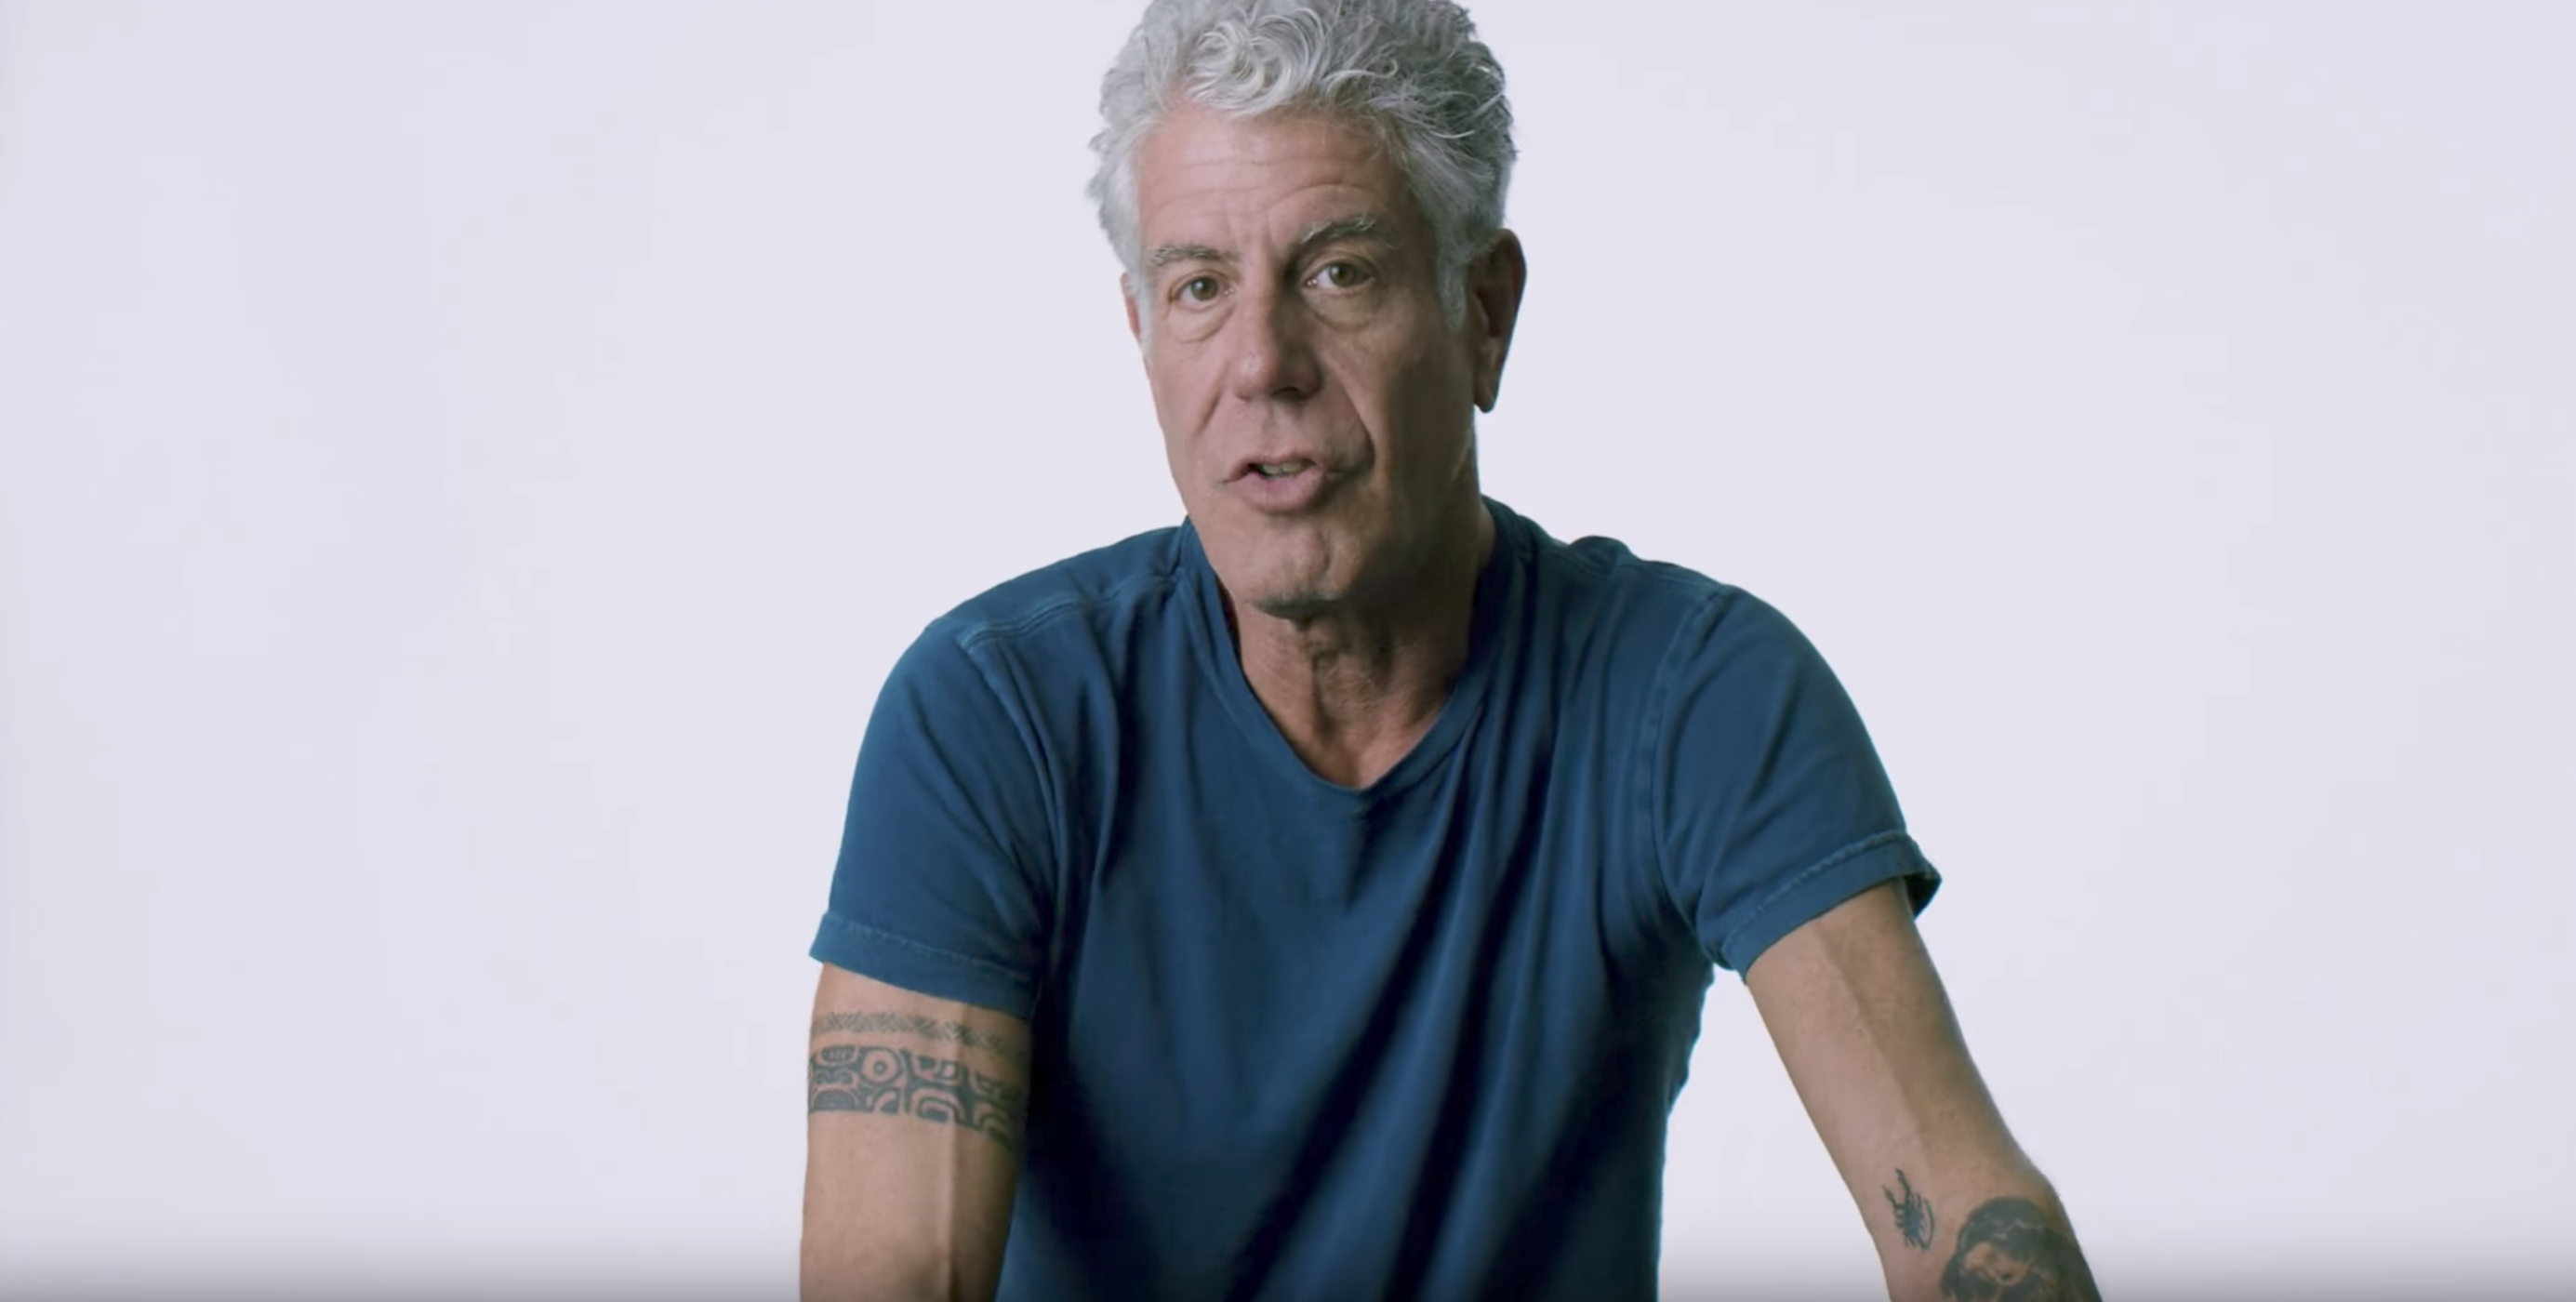 Anthony Bourdain in new documentary, Wasted! The Story of Food Waste.